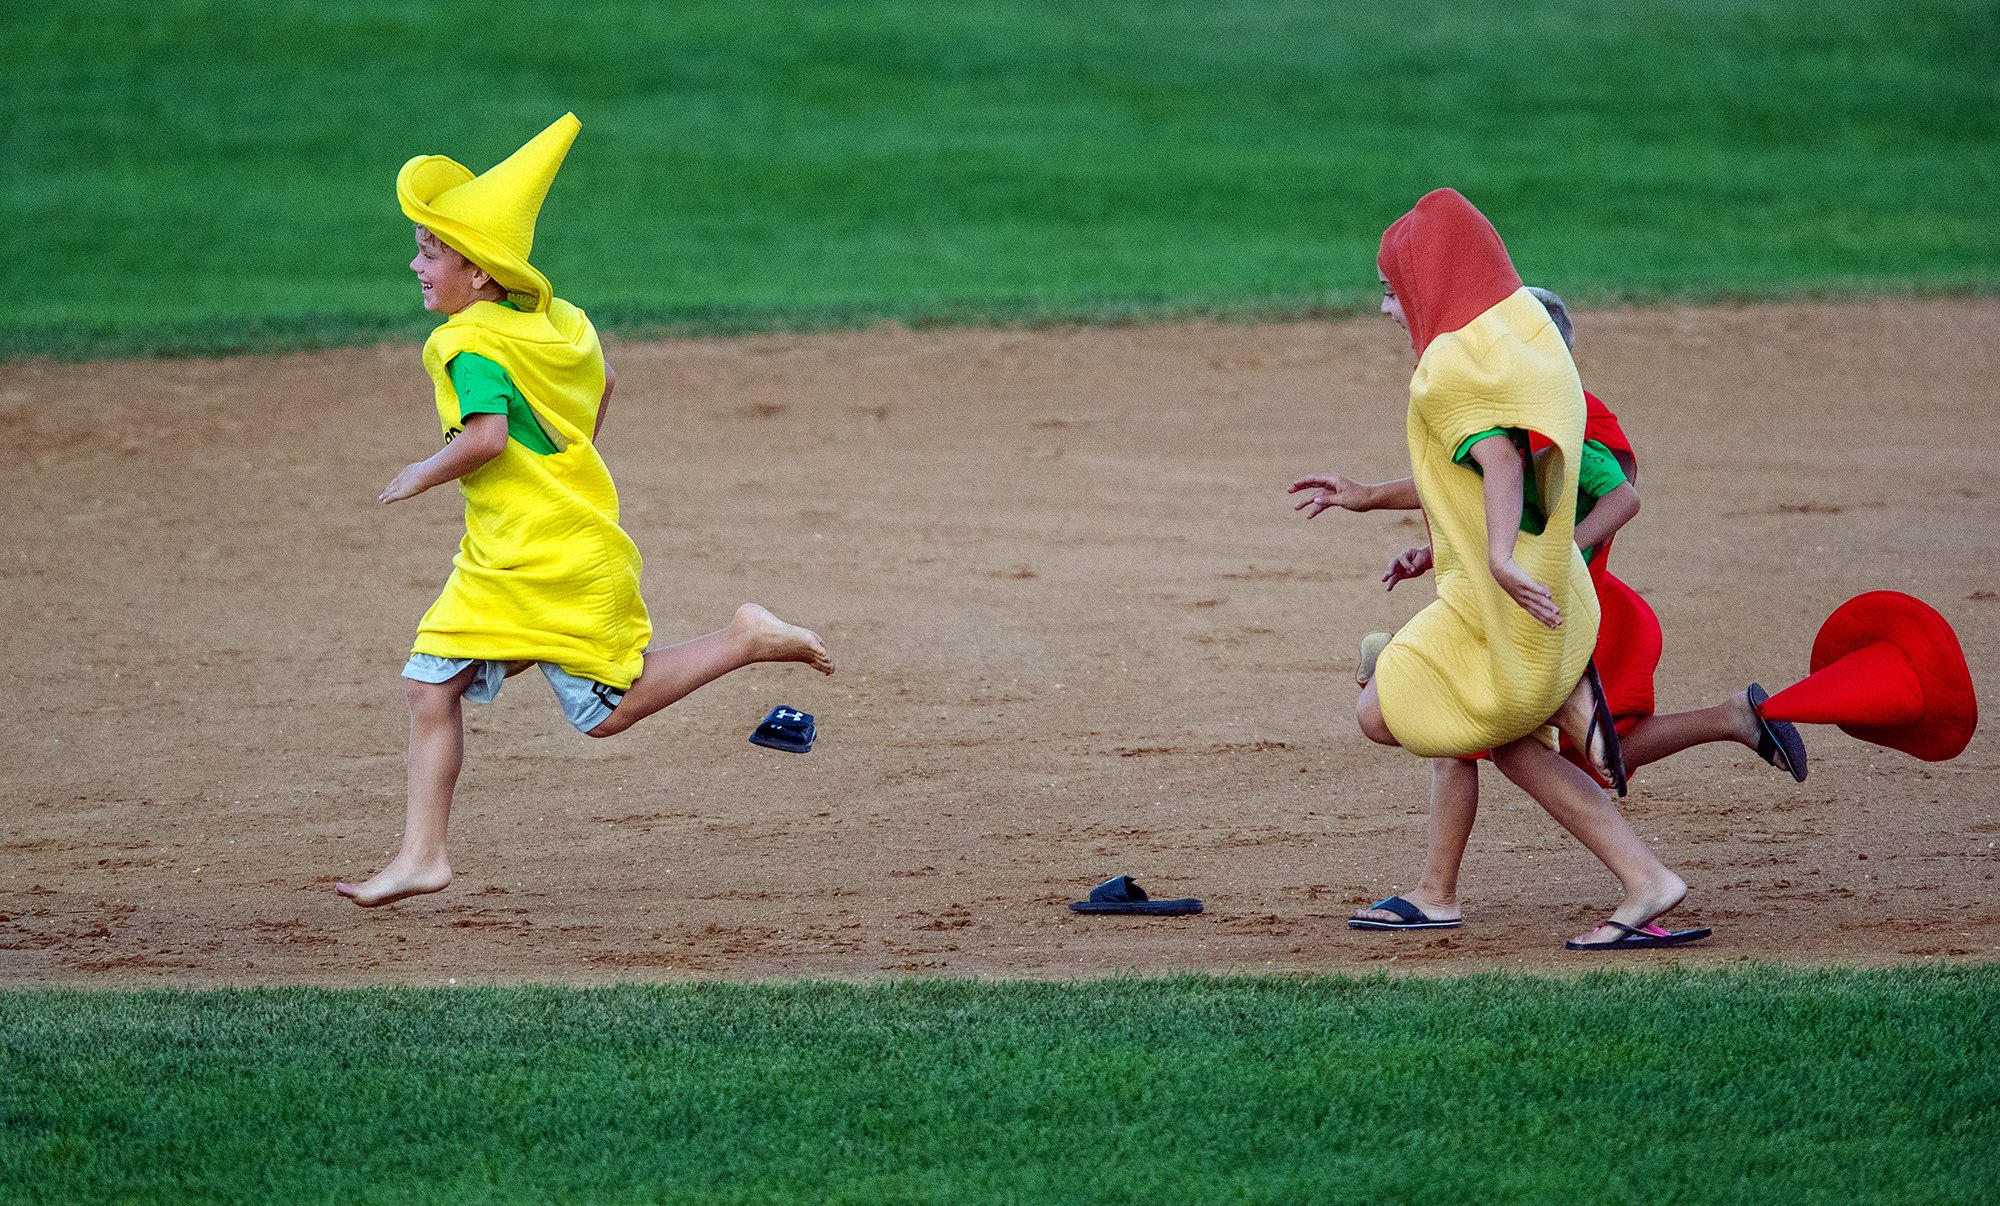 """The """"mustard"""" loses his shoes as the """"ketchup' loses his hat while they sprint around the bases with the hot dog in between innings at Robin Roberts Stadium in Springfield, Ill., Thursday, July 26, 2018. [Ted Schurter/The State Journal-Register]"""